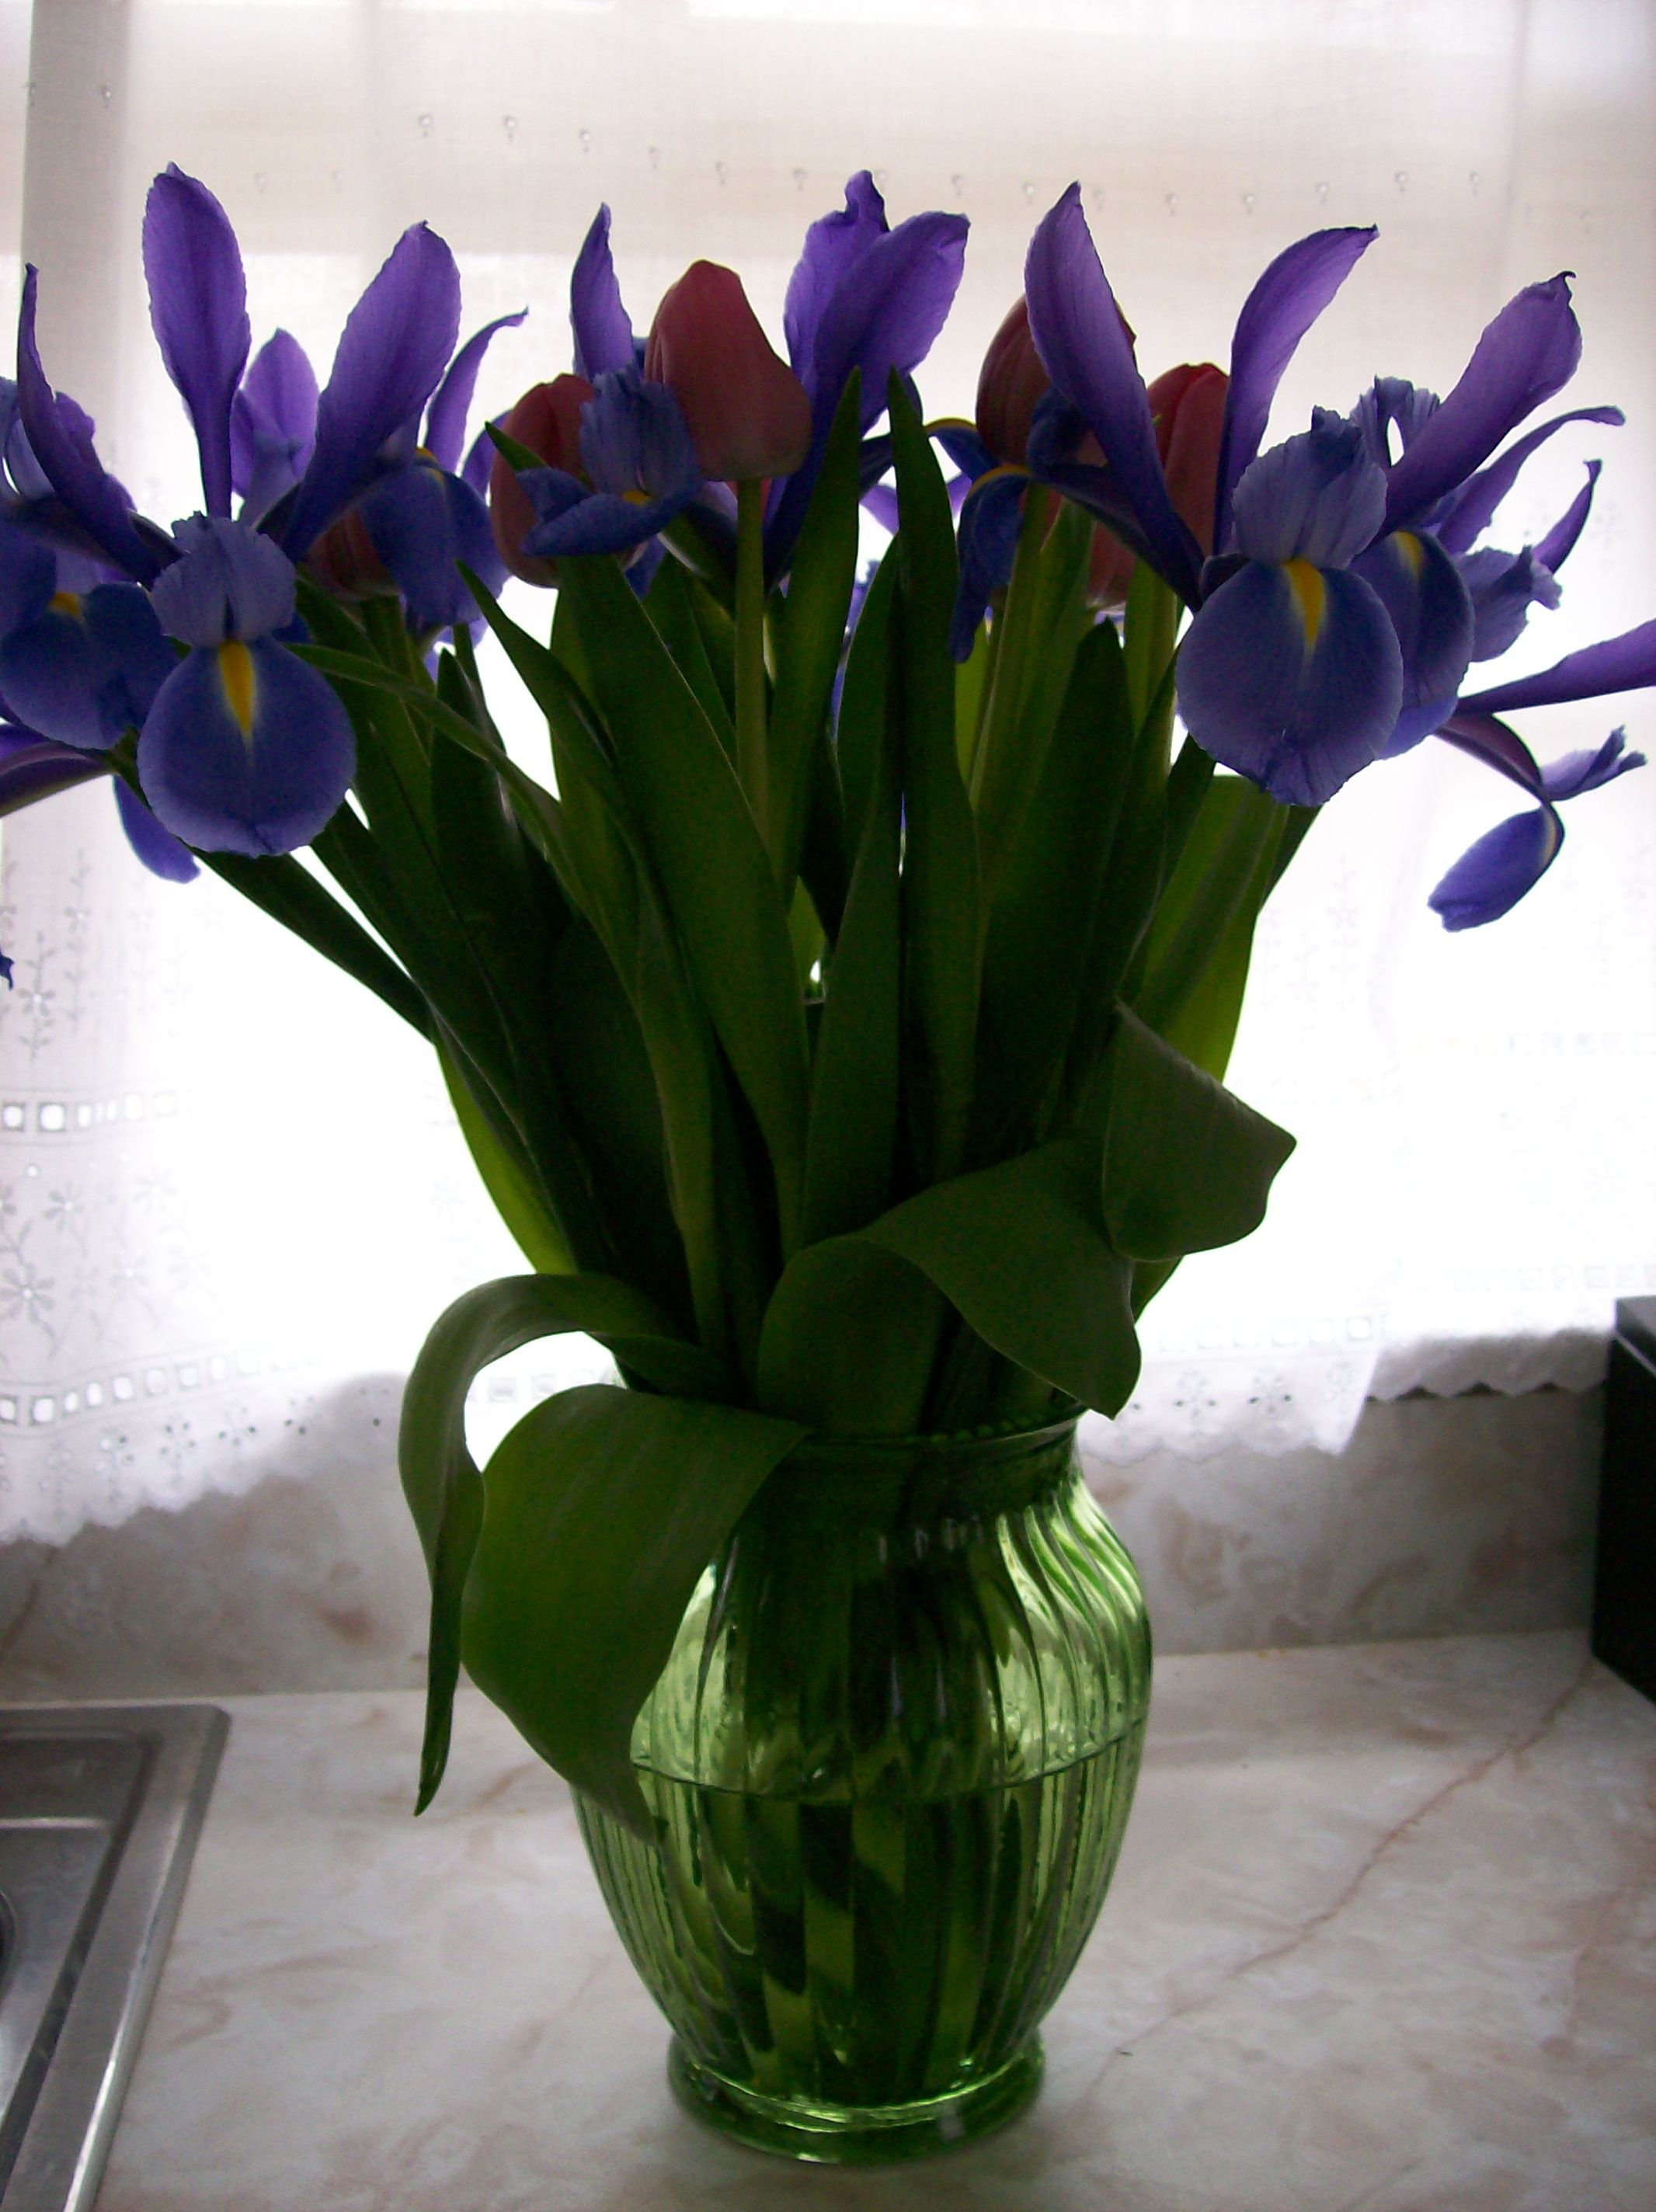 Iris and tulip a perfect combination.